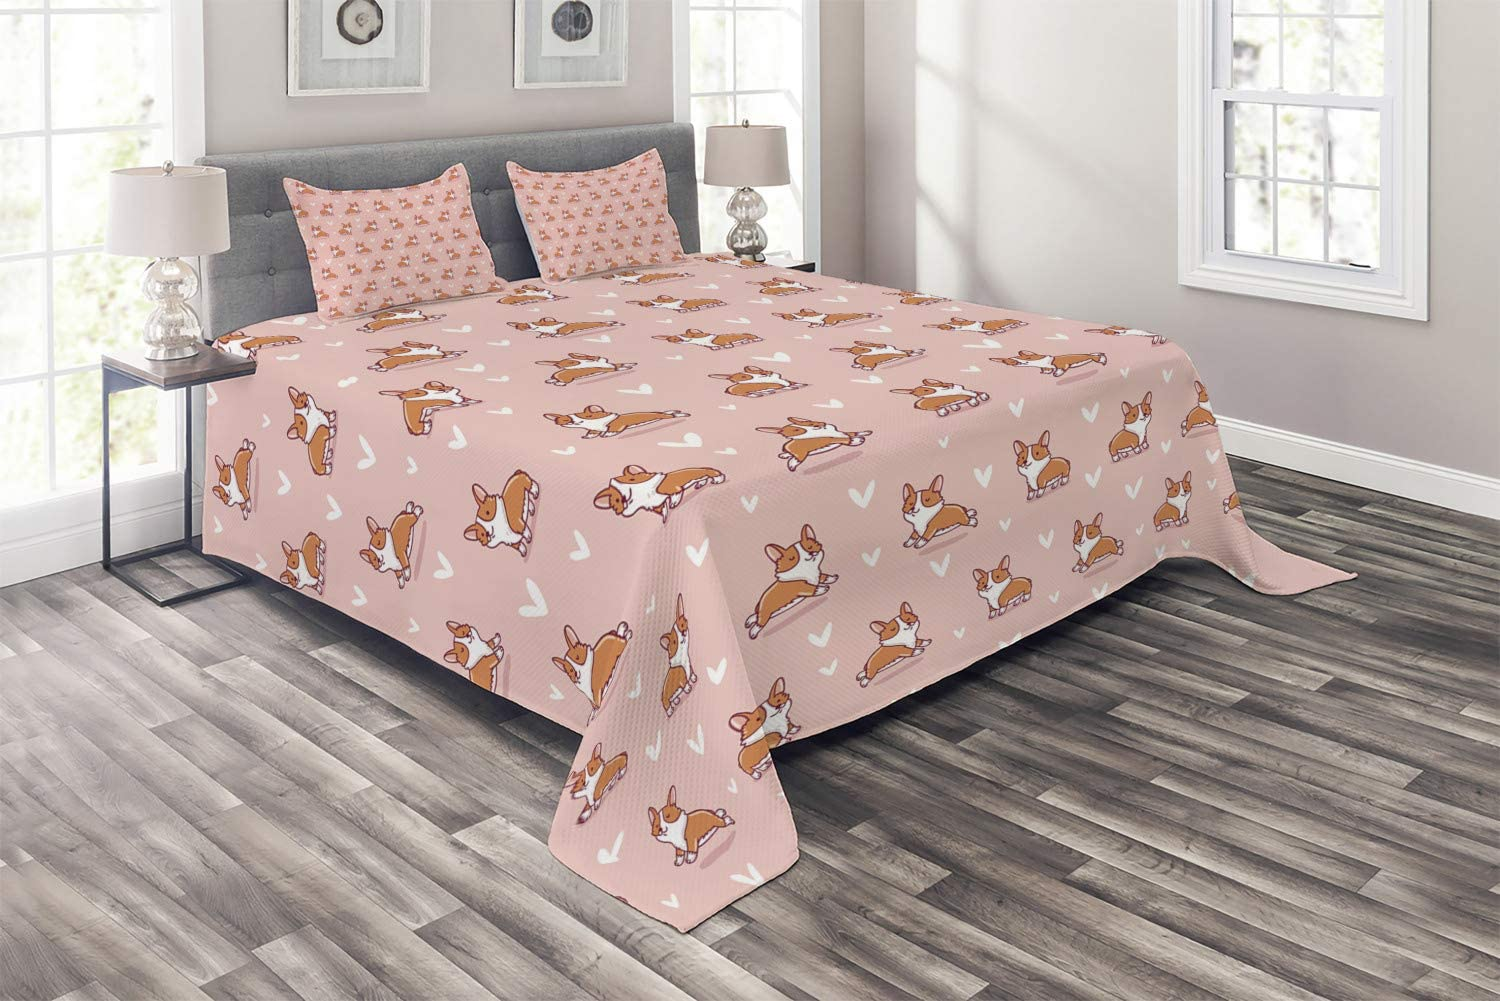 Ambesonne Dog Lover Coverlet, Little Corgi Jumping Running and Standing Cartoon Hearts Background, 3 Piece Decorative Quilted Bedspread Set with 2 Pillow Shams, Queen Size, Orange White